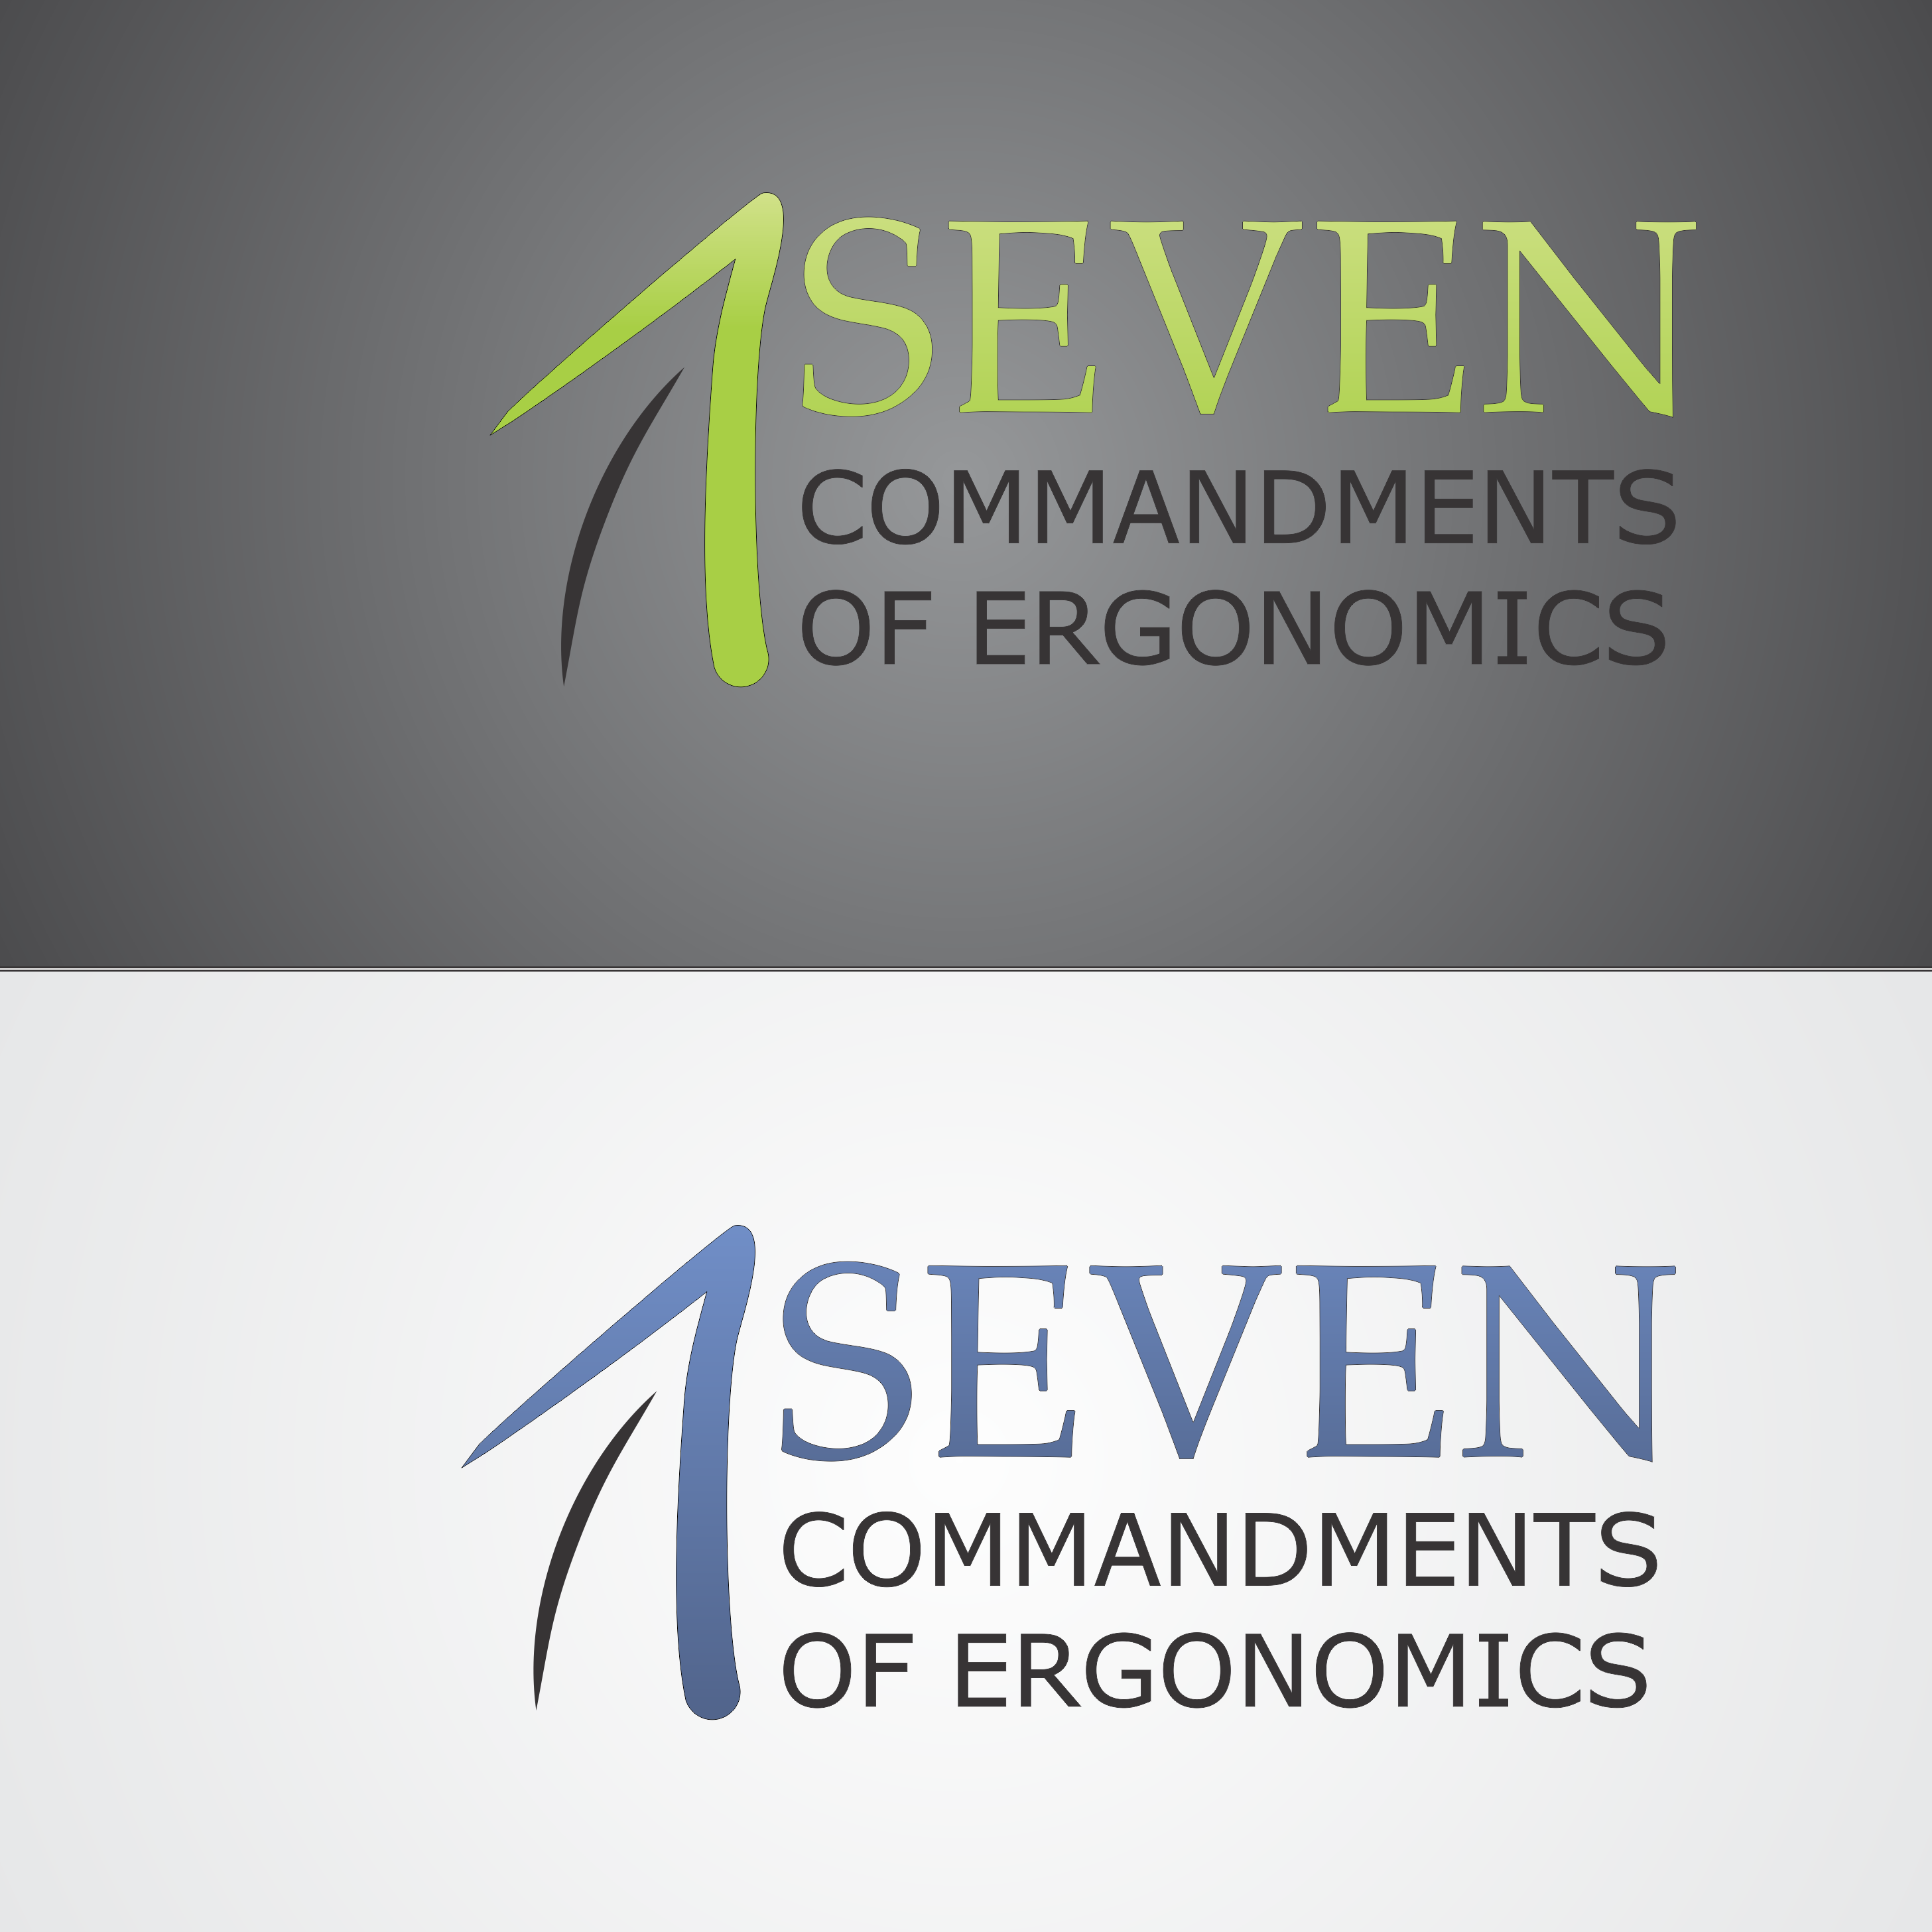 Logo Design by robbiemack - Entry No. 29 in the Logo Design Contest Logo Design for Seven Commandments of Ergonomics.